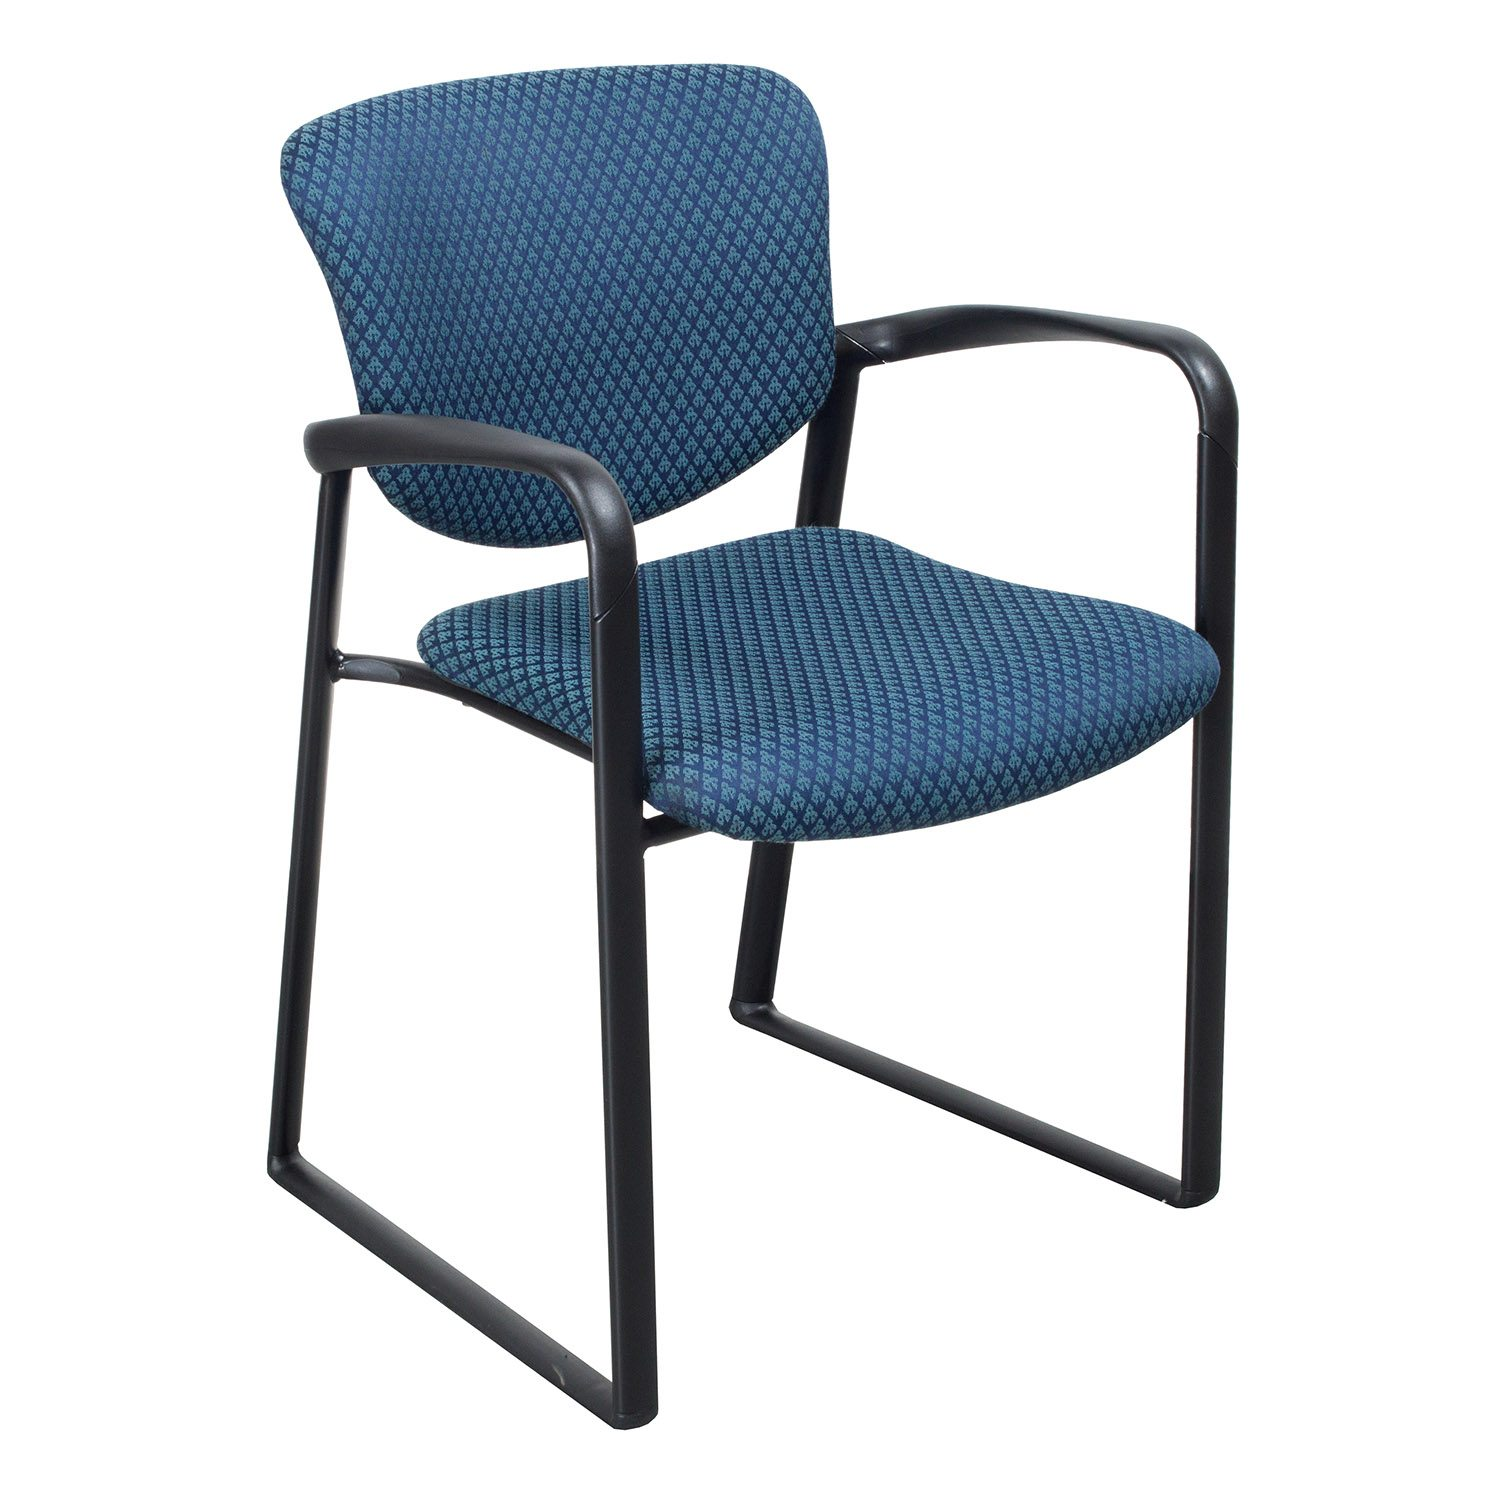 Designer Chairs Used Haworth Improv Used Side Chair Blue Design National